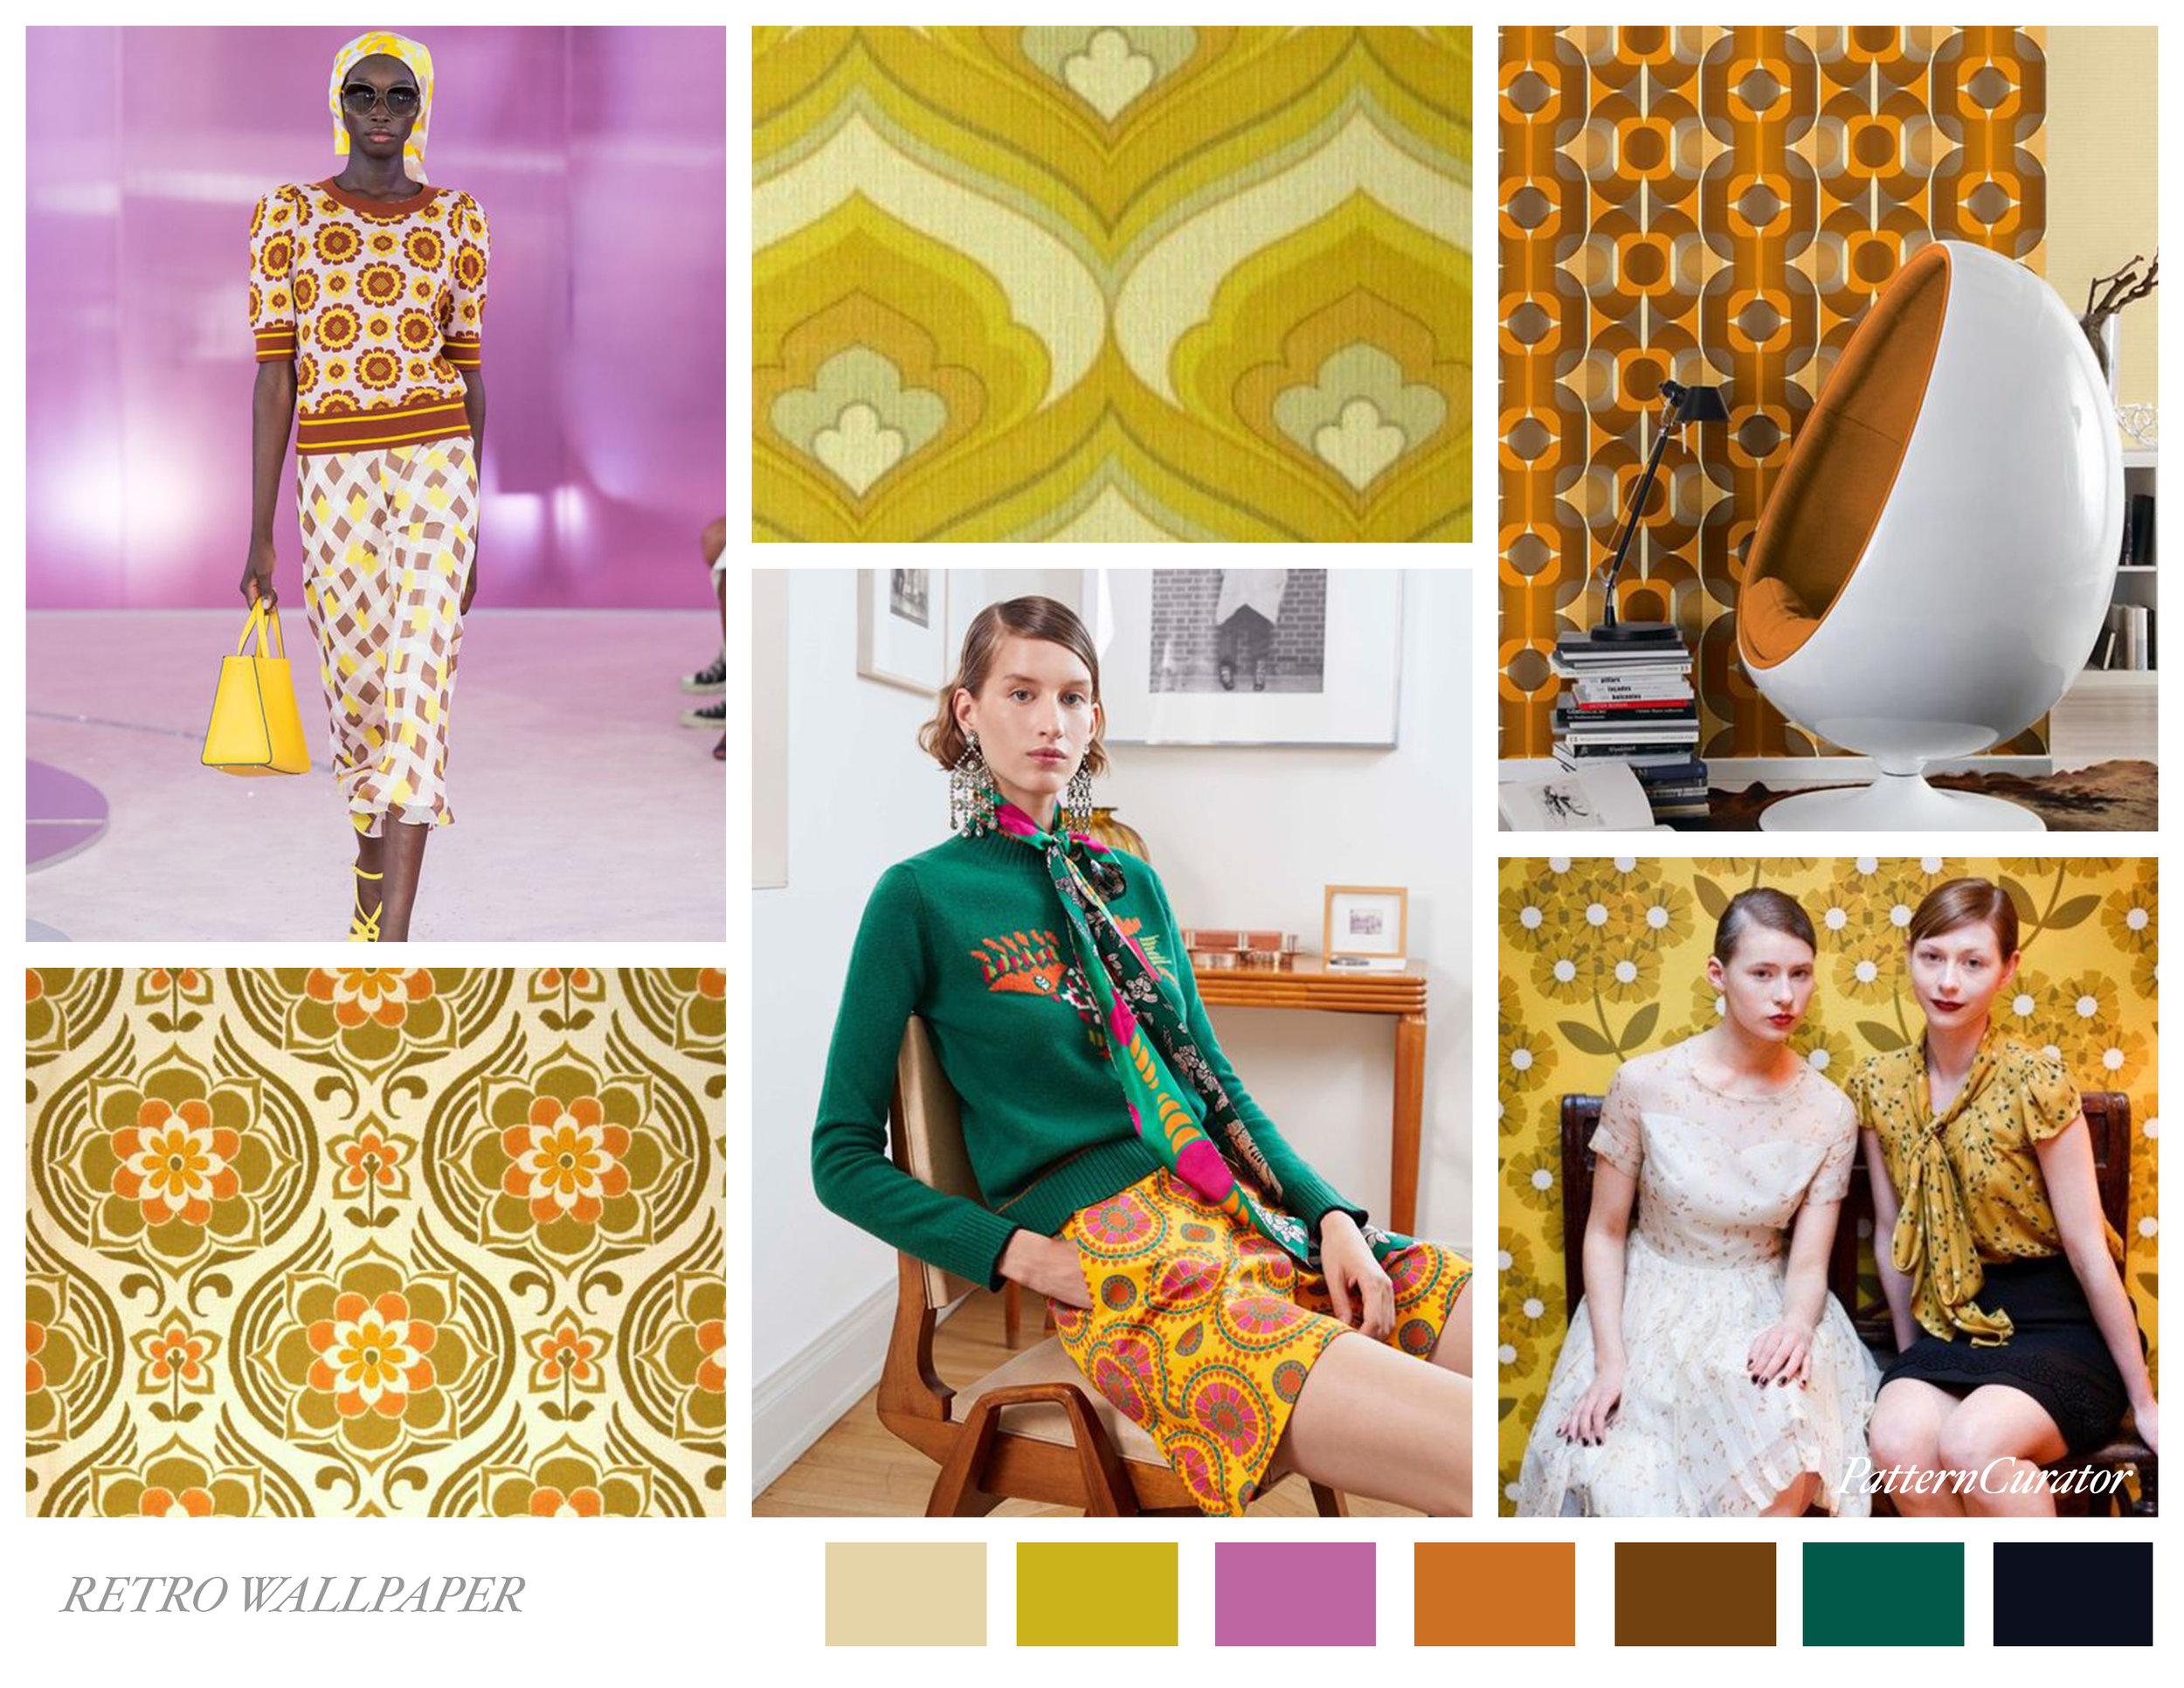 RETRO-WALLPAPER-print.jpg